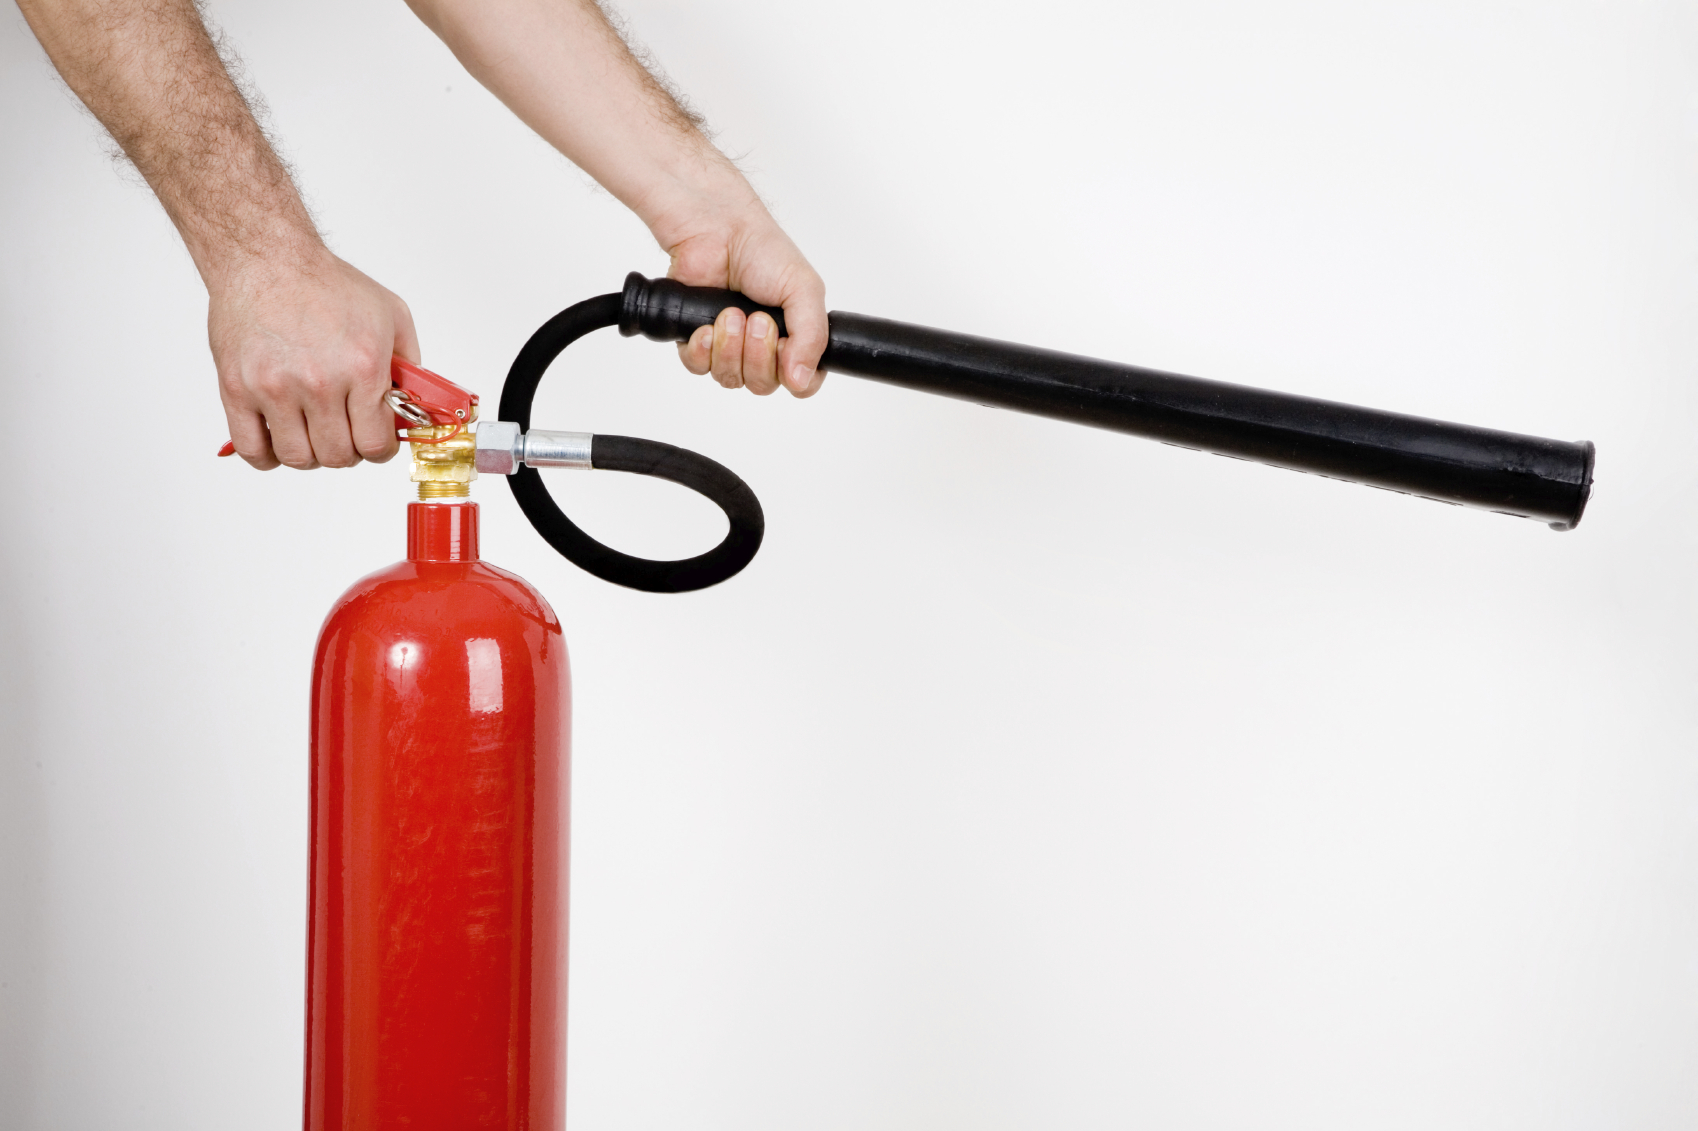 Pass The Fire Extinguisher Amica Shares Safety Tips